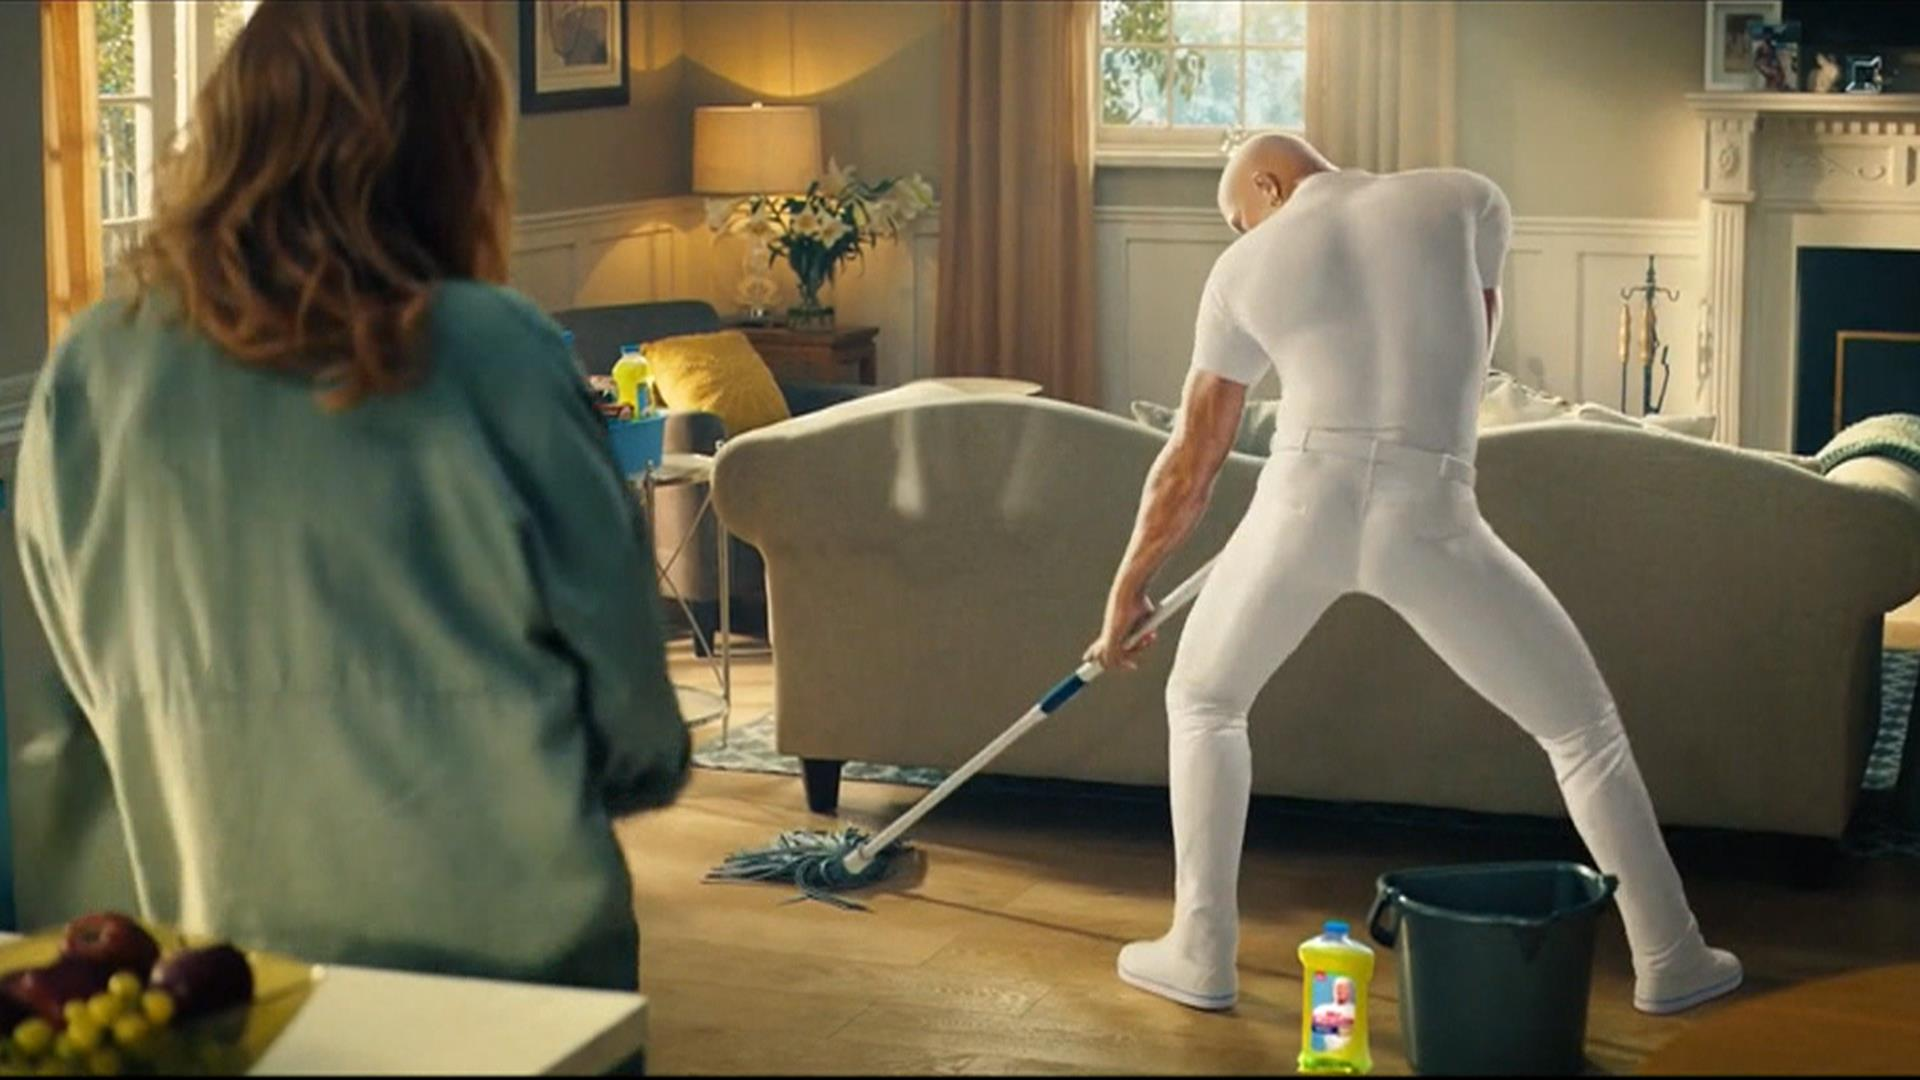 Meet The Sexy New Mr Clean First Look At Hilarious Super